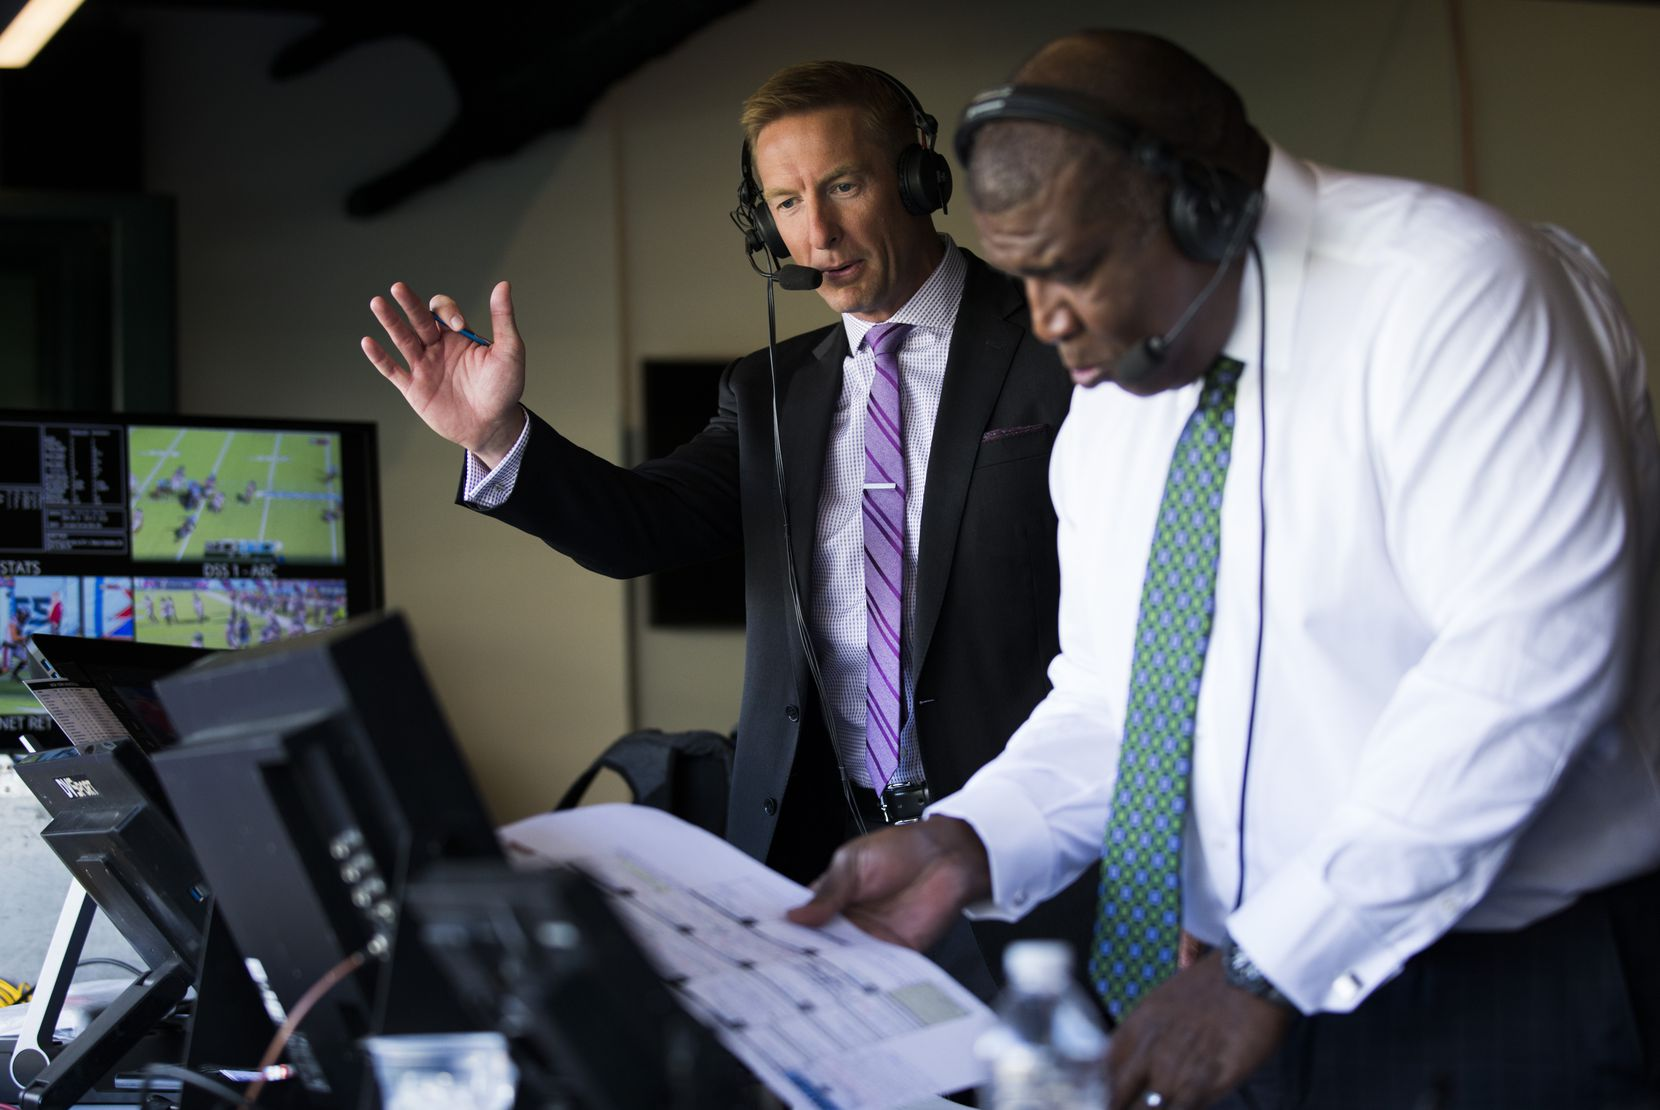 FOX Sports broadcasters Joel Klatt (left) and Curt Menefee call an XFL game between the Dallas Renegades and the New York Guardians on Saturday, March 7, 2020 at Globe Life Park in Arlington. (Ashley Landis/The Dallas Morning News)